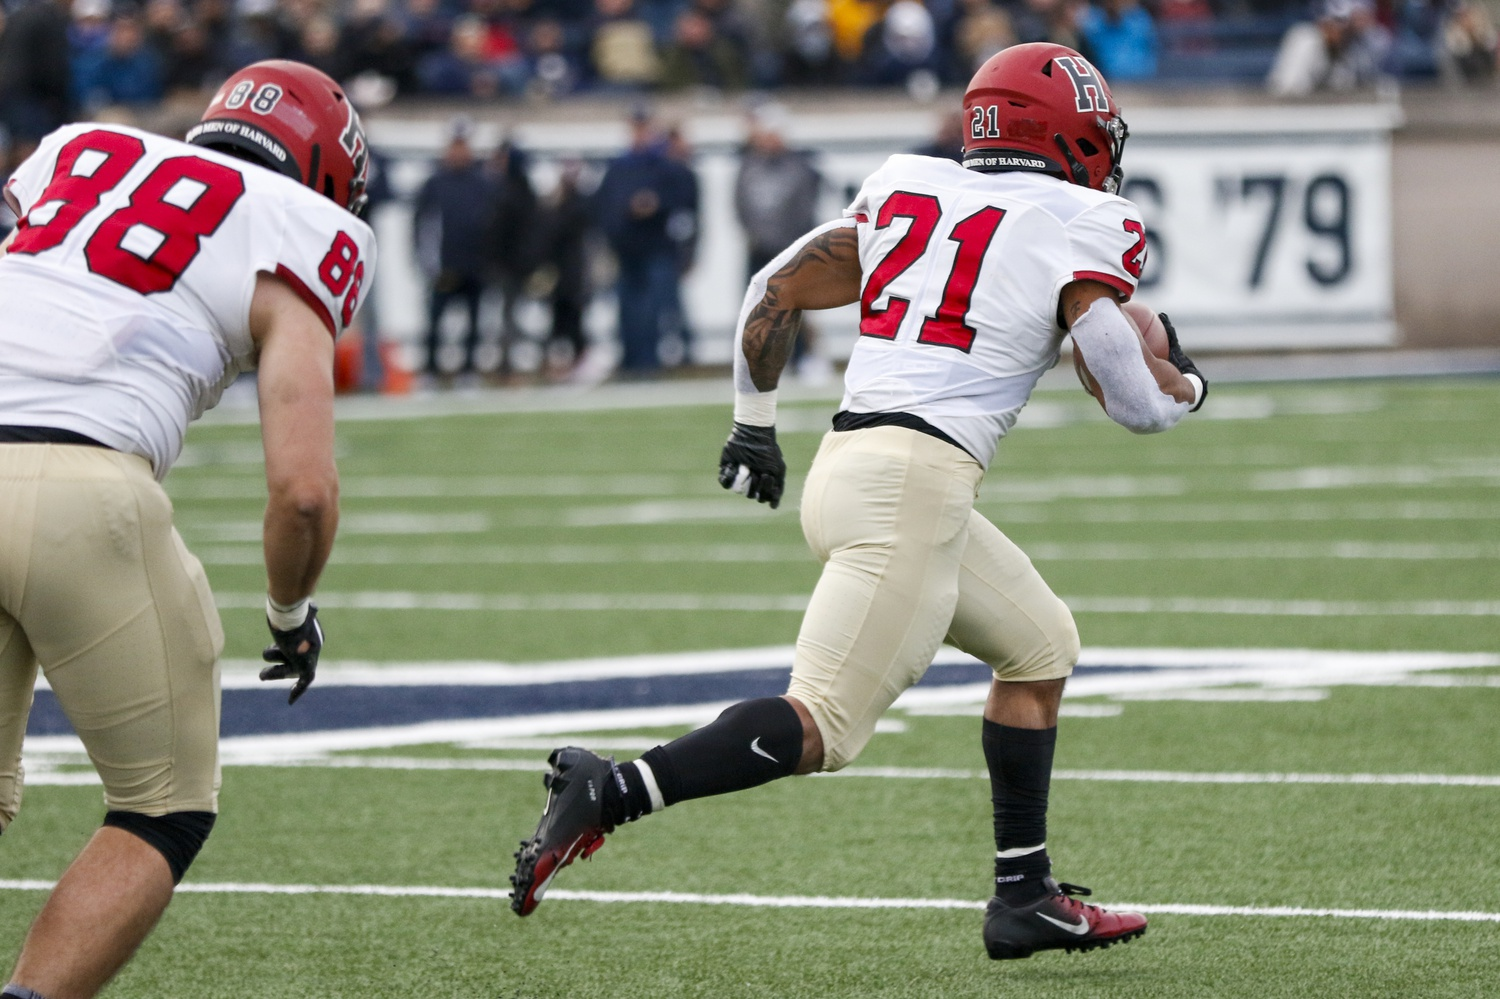 Sophomore running back Aidan Borguet, pictured above in 2019 against Yale, opened the Crimson's scoring attack on Saturday. Borguet posted a whopping 269 yards and four touchdowns in that Yale game, and against Georgetown, he earned 85 yards and a touchdown on seven carries.